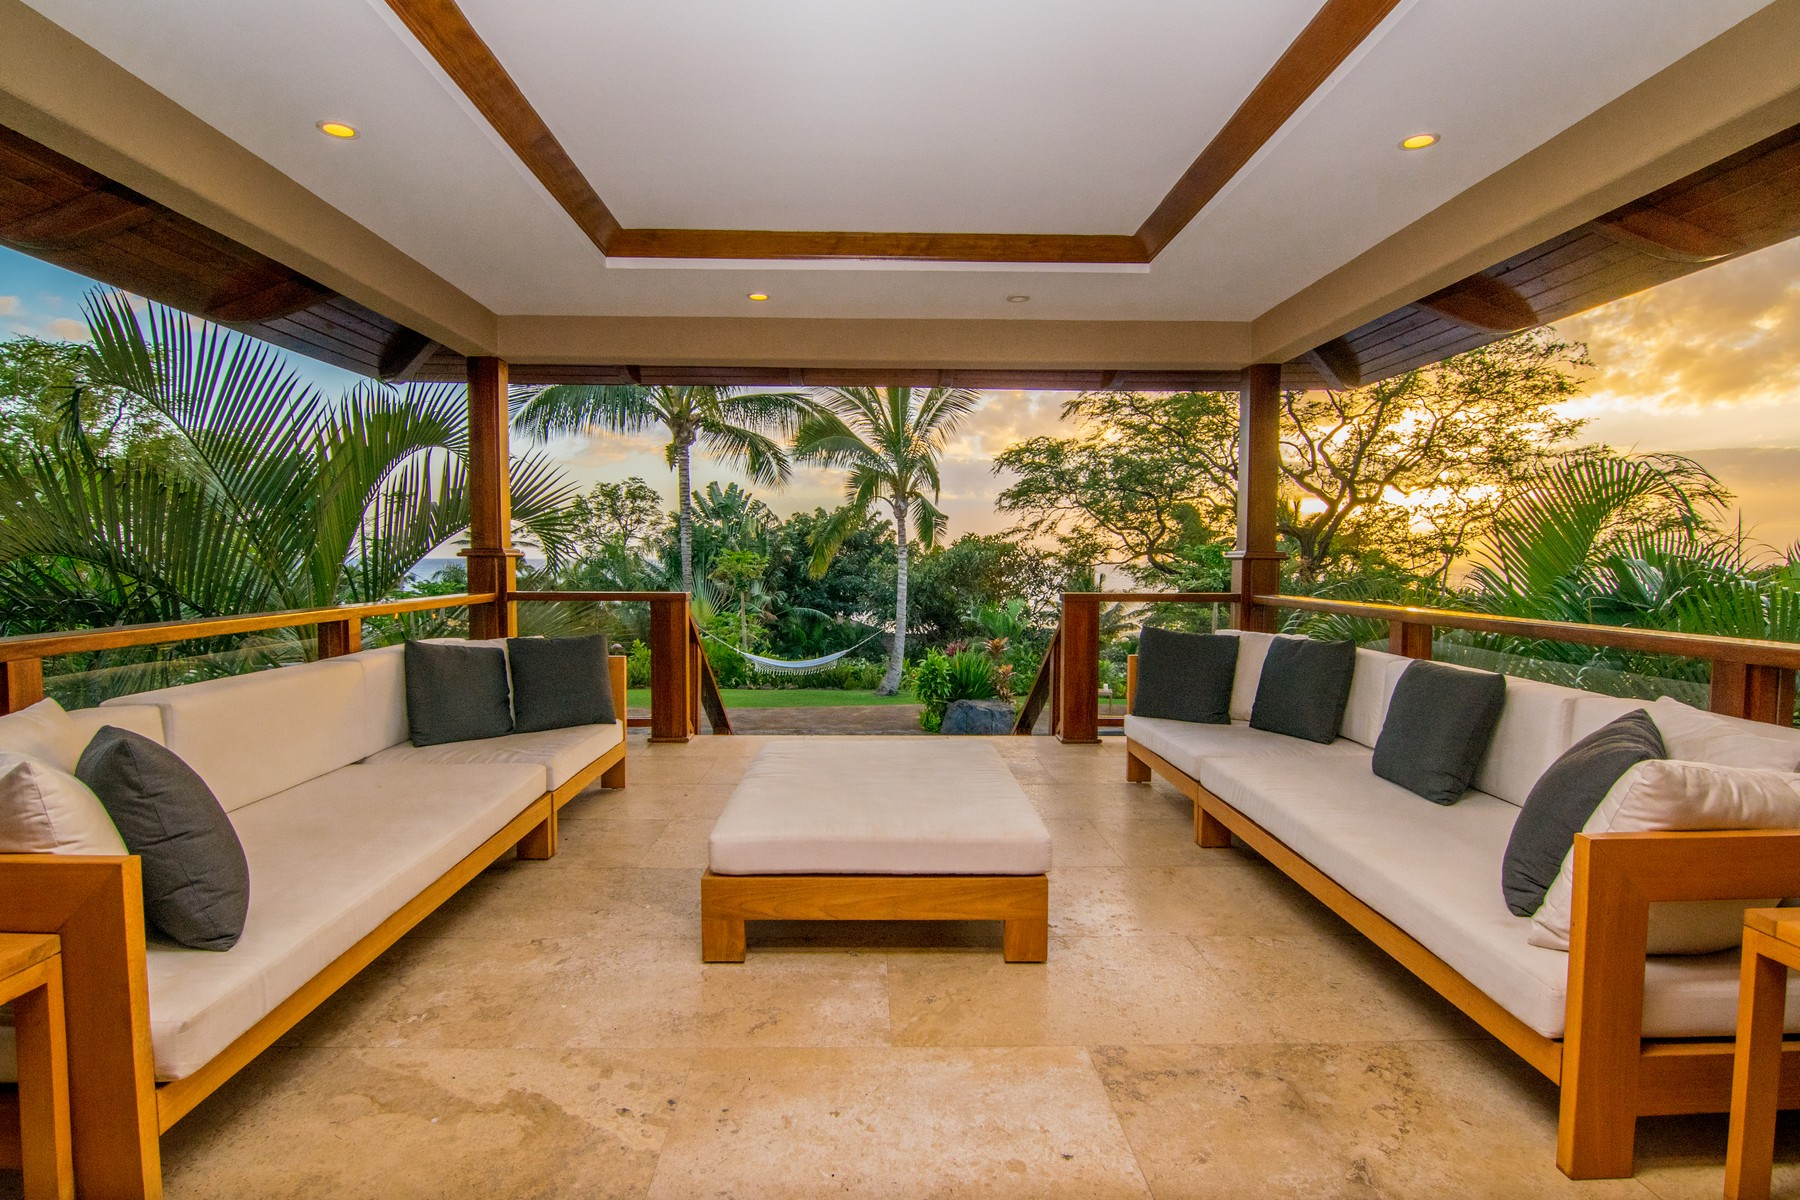 Maison unifamiliale pour l Vente à Makena Luxury Home 7131 Makena Road Wailea, Hawaii 96753 États-Unis